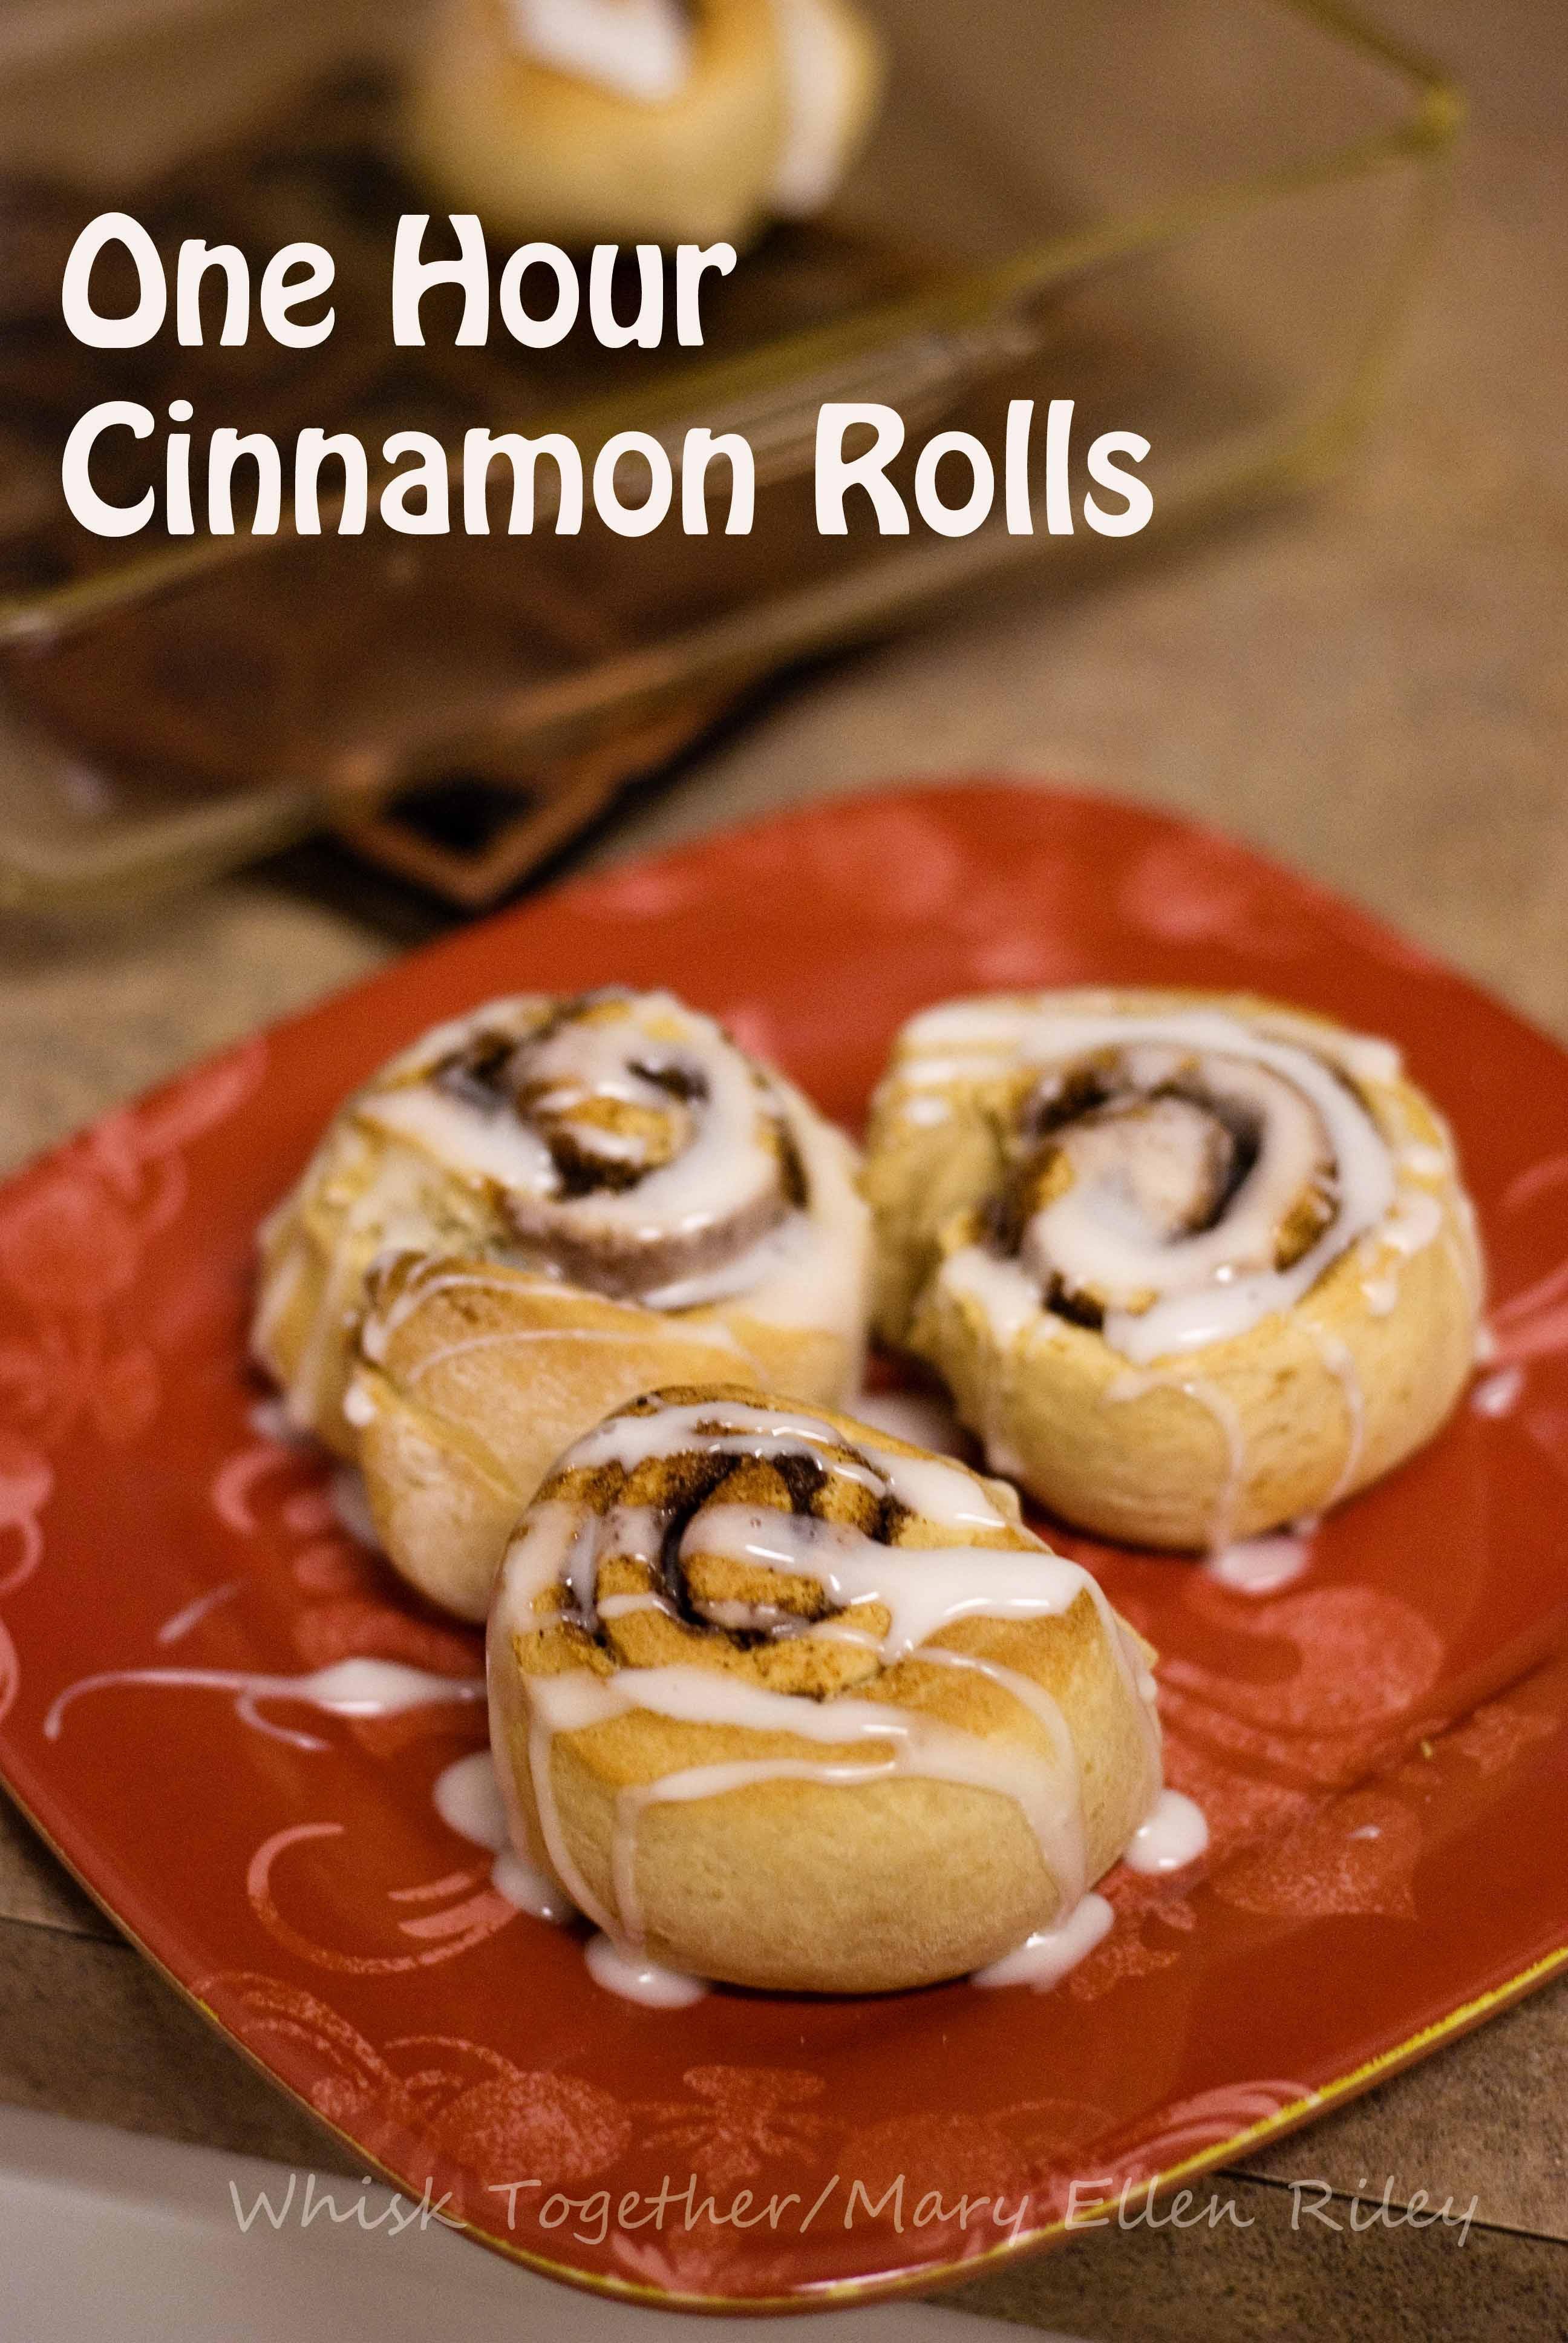 One Hour Yeast Cinnamon Rolls_3 on Whisk Together